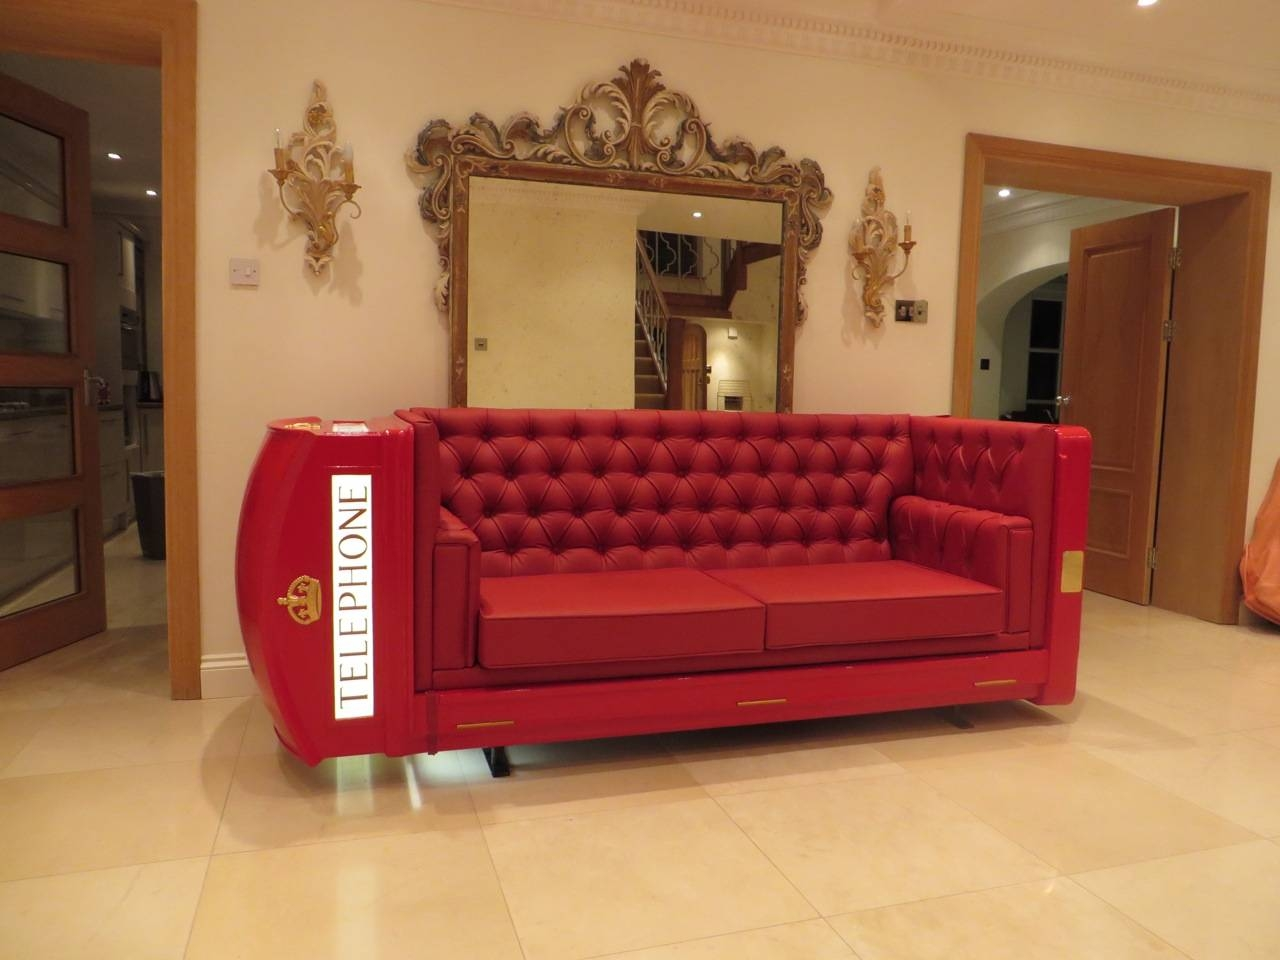 K6 Red Telephone Box Booth Kiosk Sofa / Lounger X Factor 2014 throughout Telephone Box Wardrobes (Image 7 of 15)